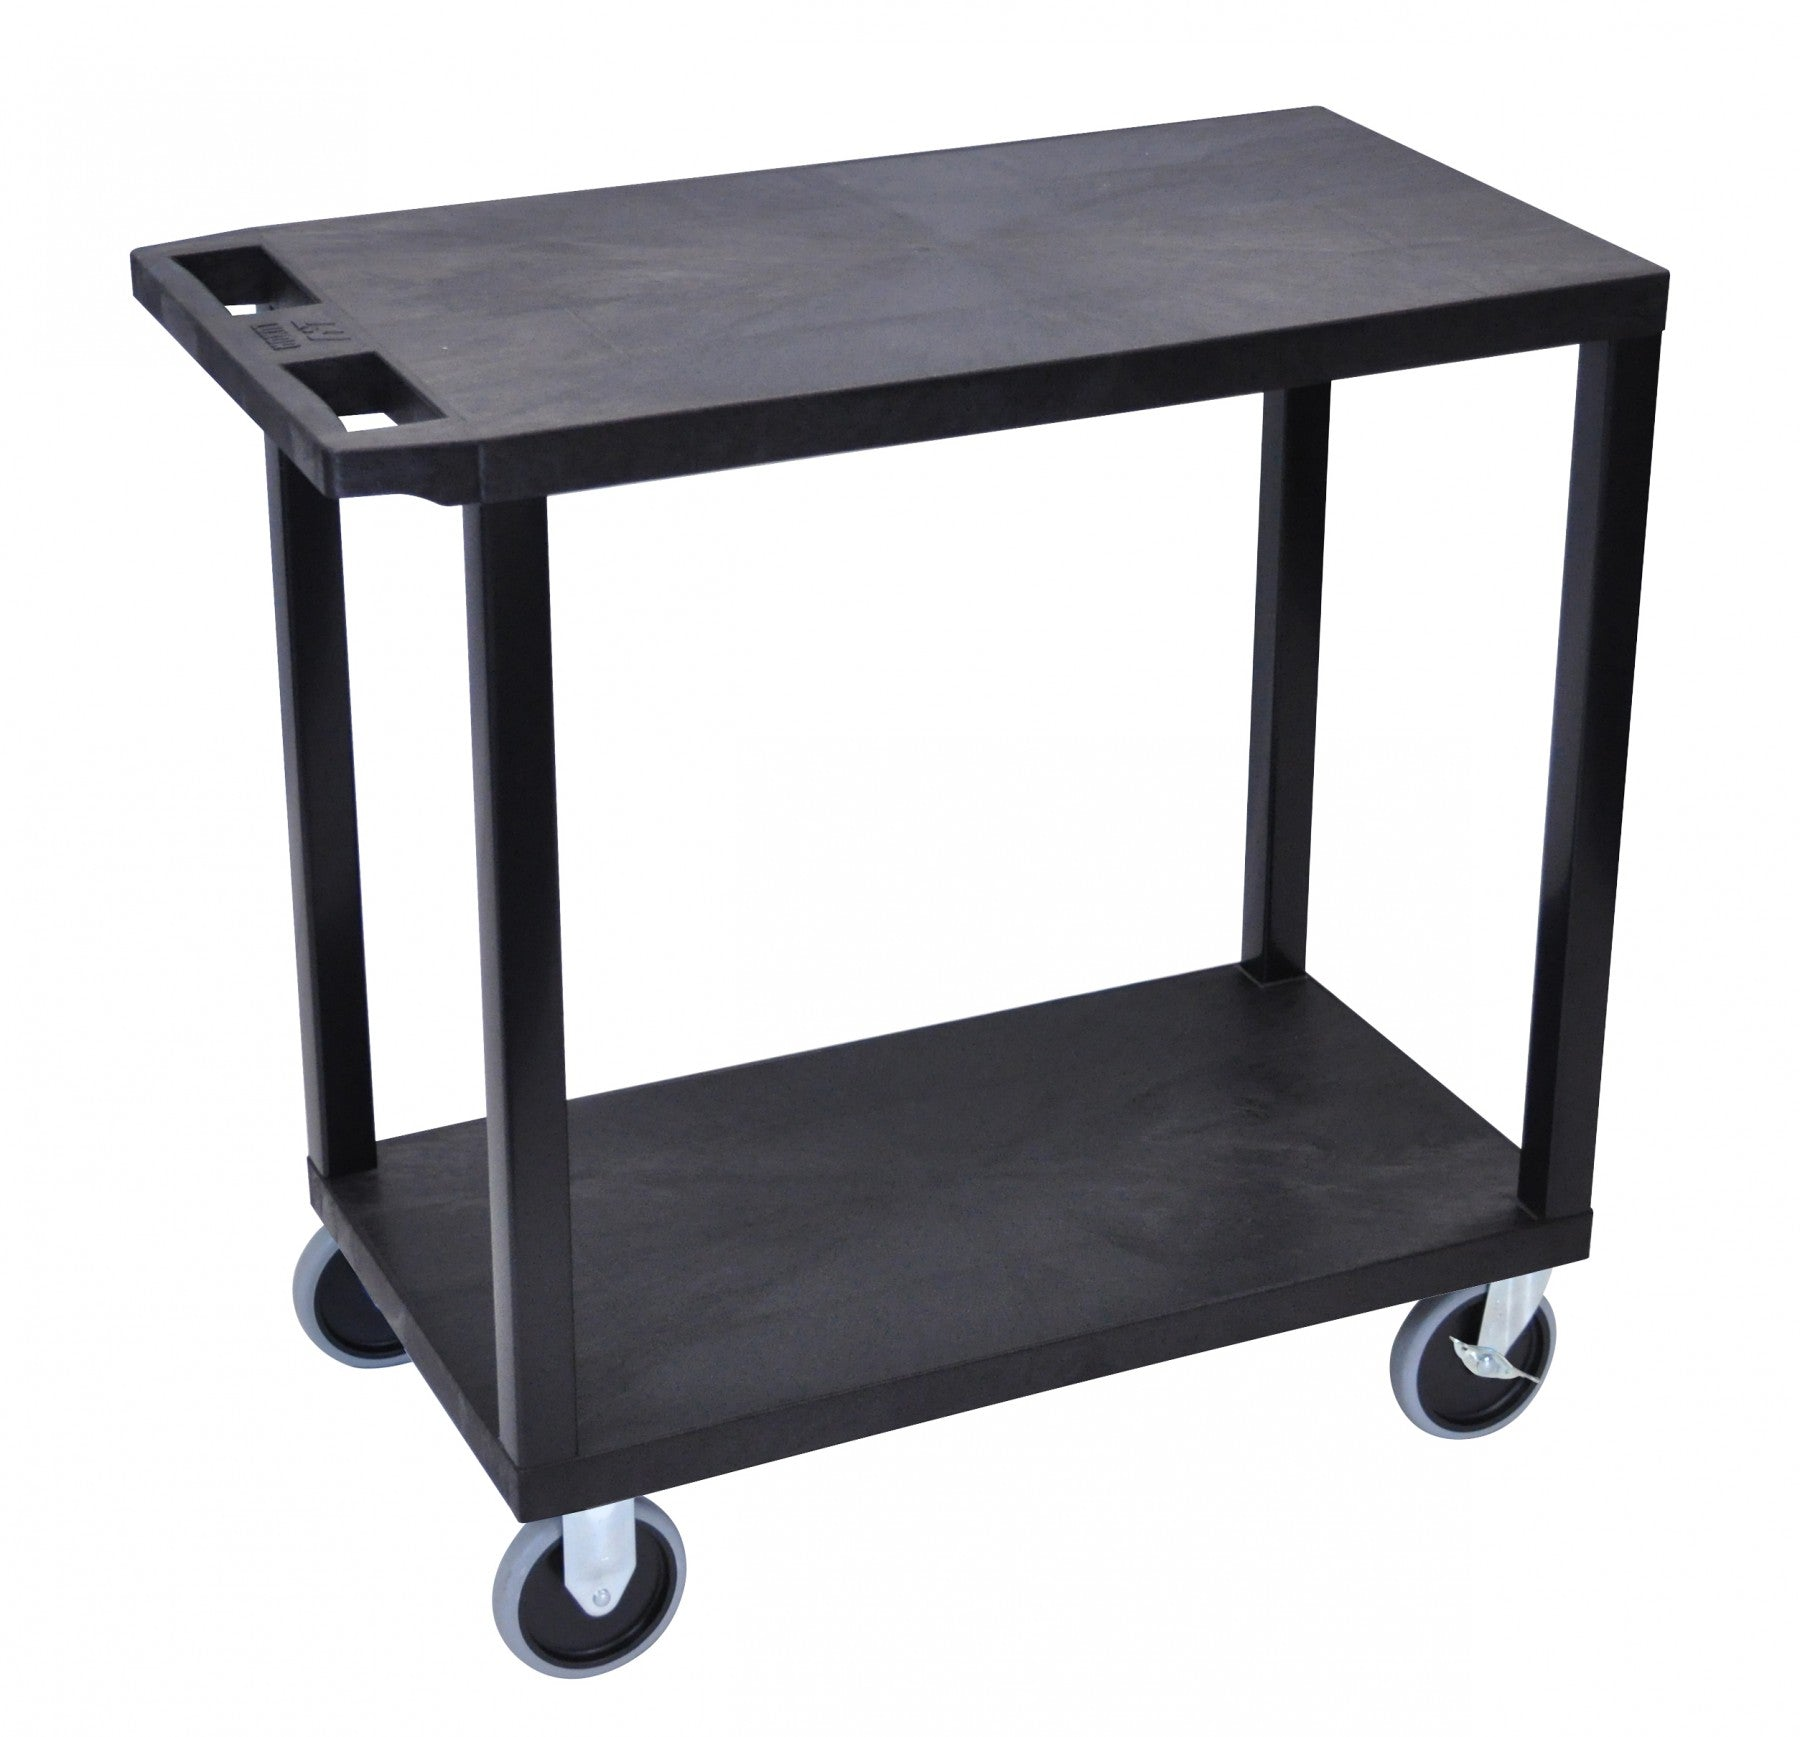 Luxor 2 Tier Cart, (2 Flat Tops) - International Tool Company